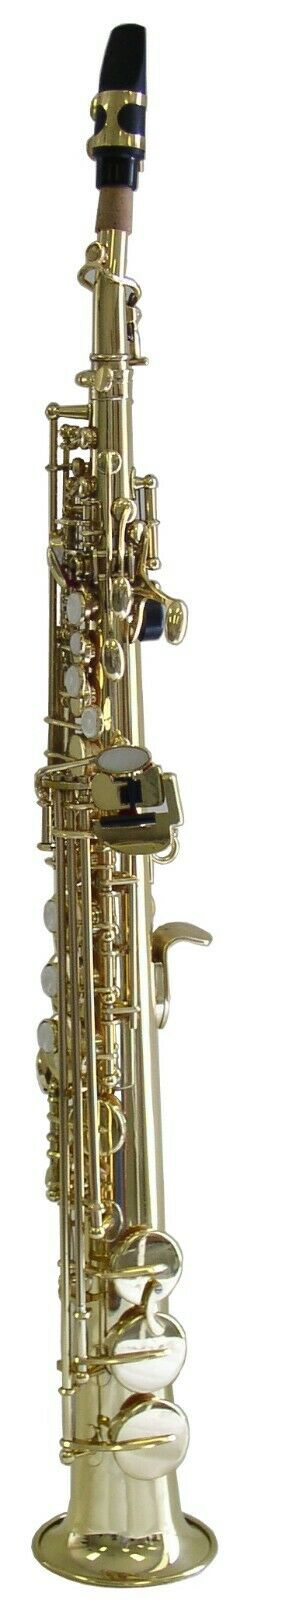 NEW Soprano Saxophone *FREE Shipping* inside the continental US